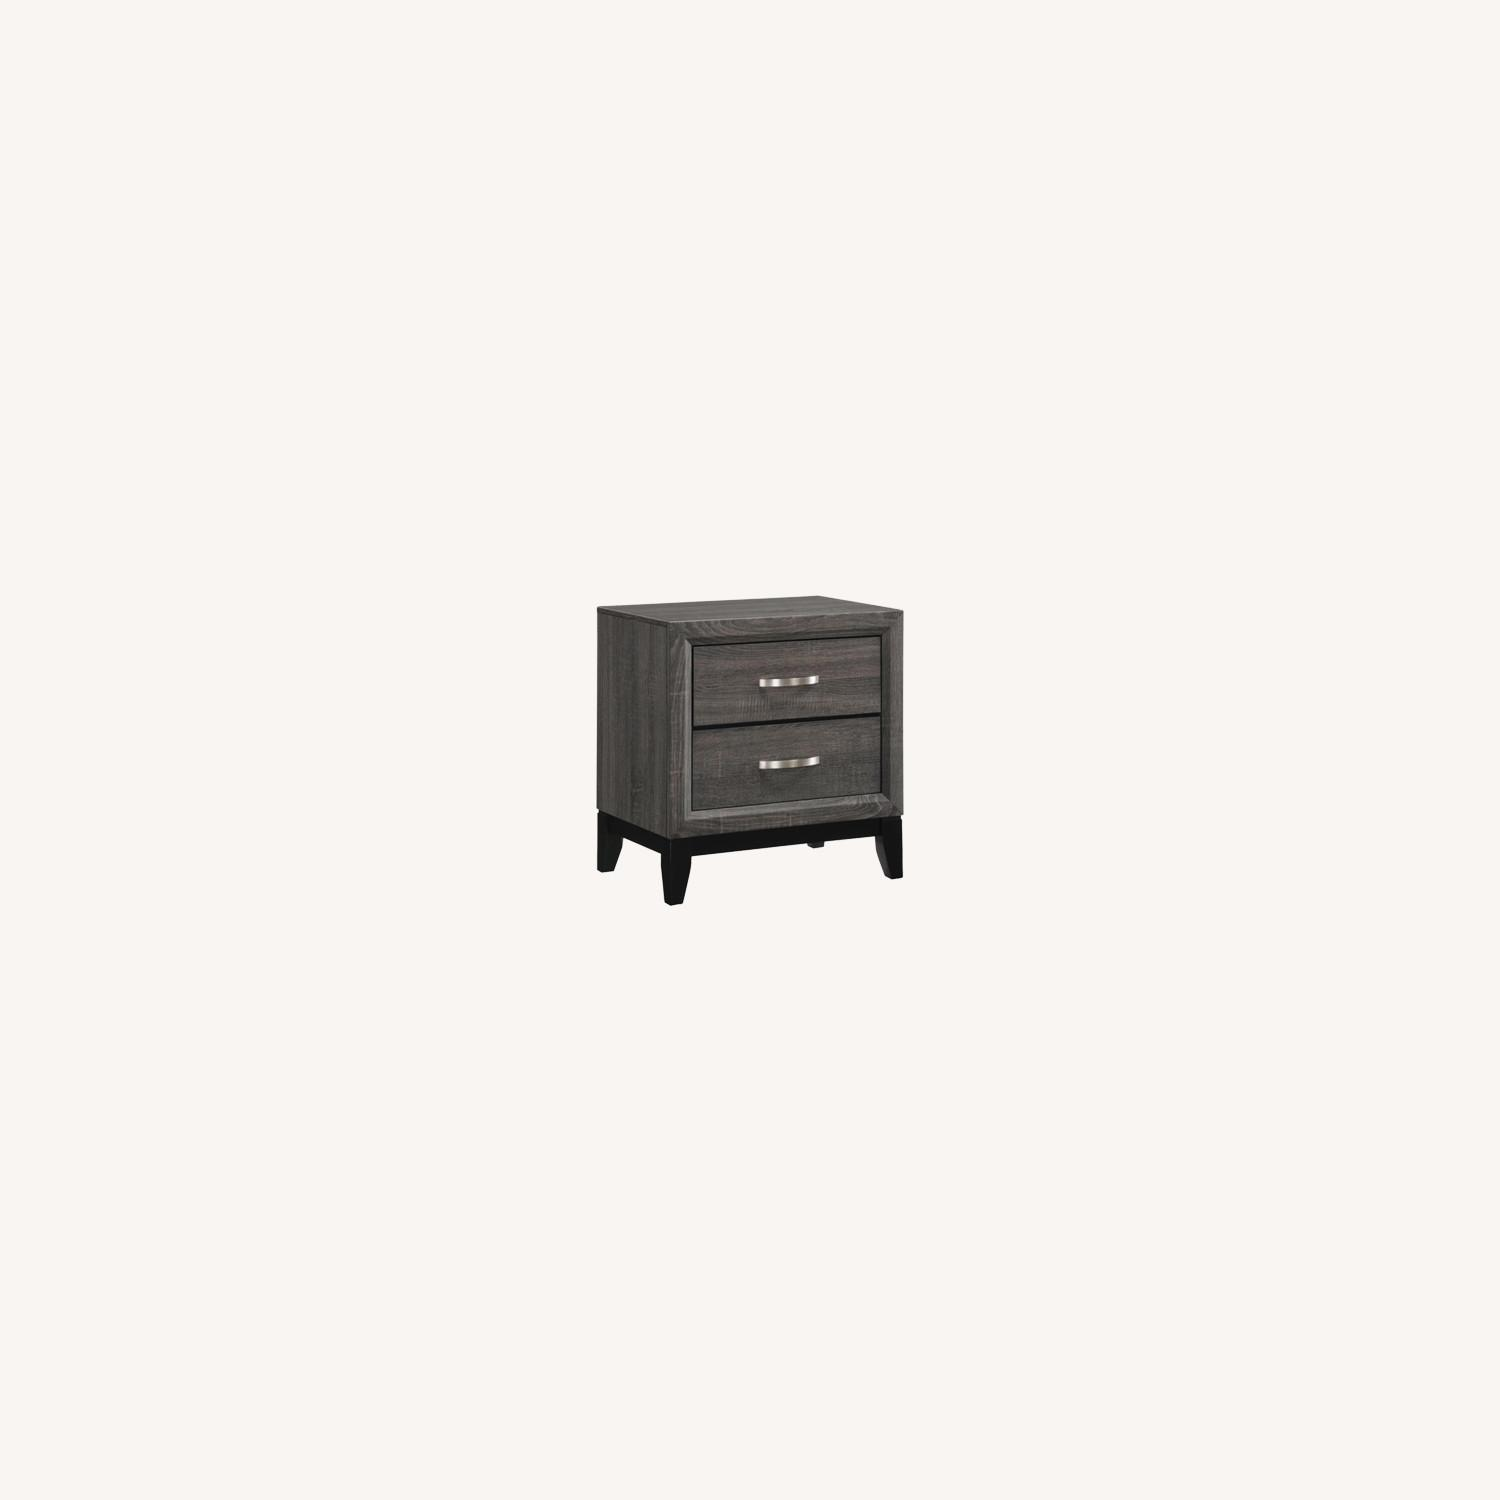 Transitional Nightstand In Rustic Grey Oak - image-4